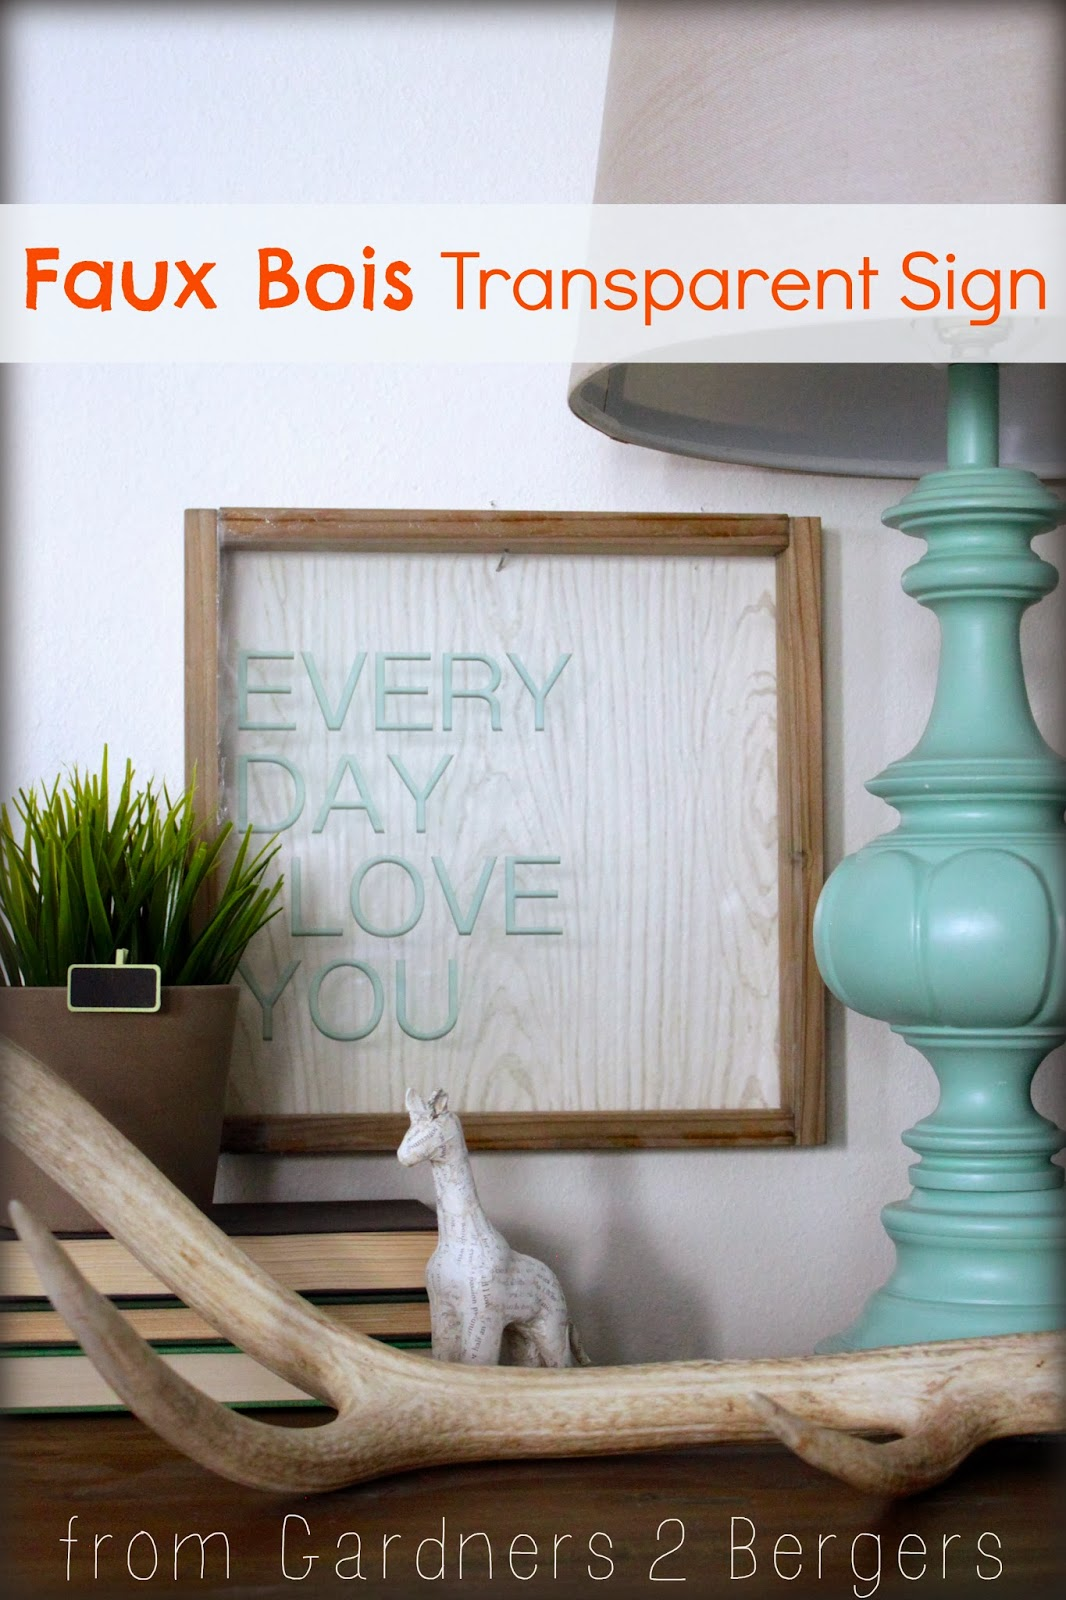 Bois Transparent From Gardners 2 Bergers Faux Bois Every Day I Love You Sign